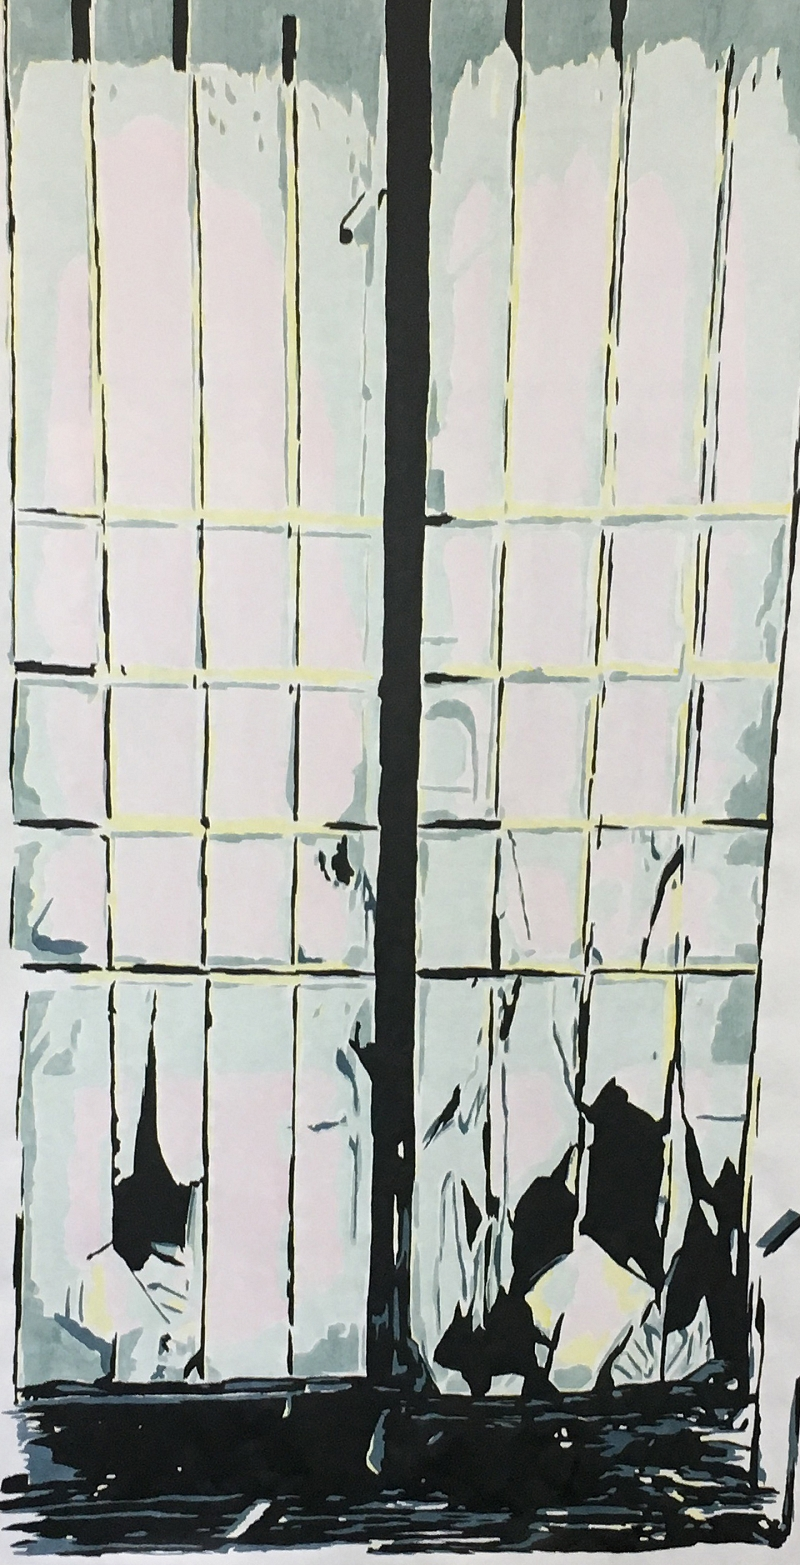 Mirror (ink on paper on canvas, 185x97cm)